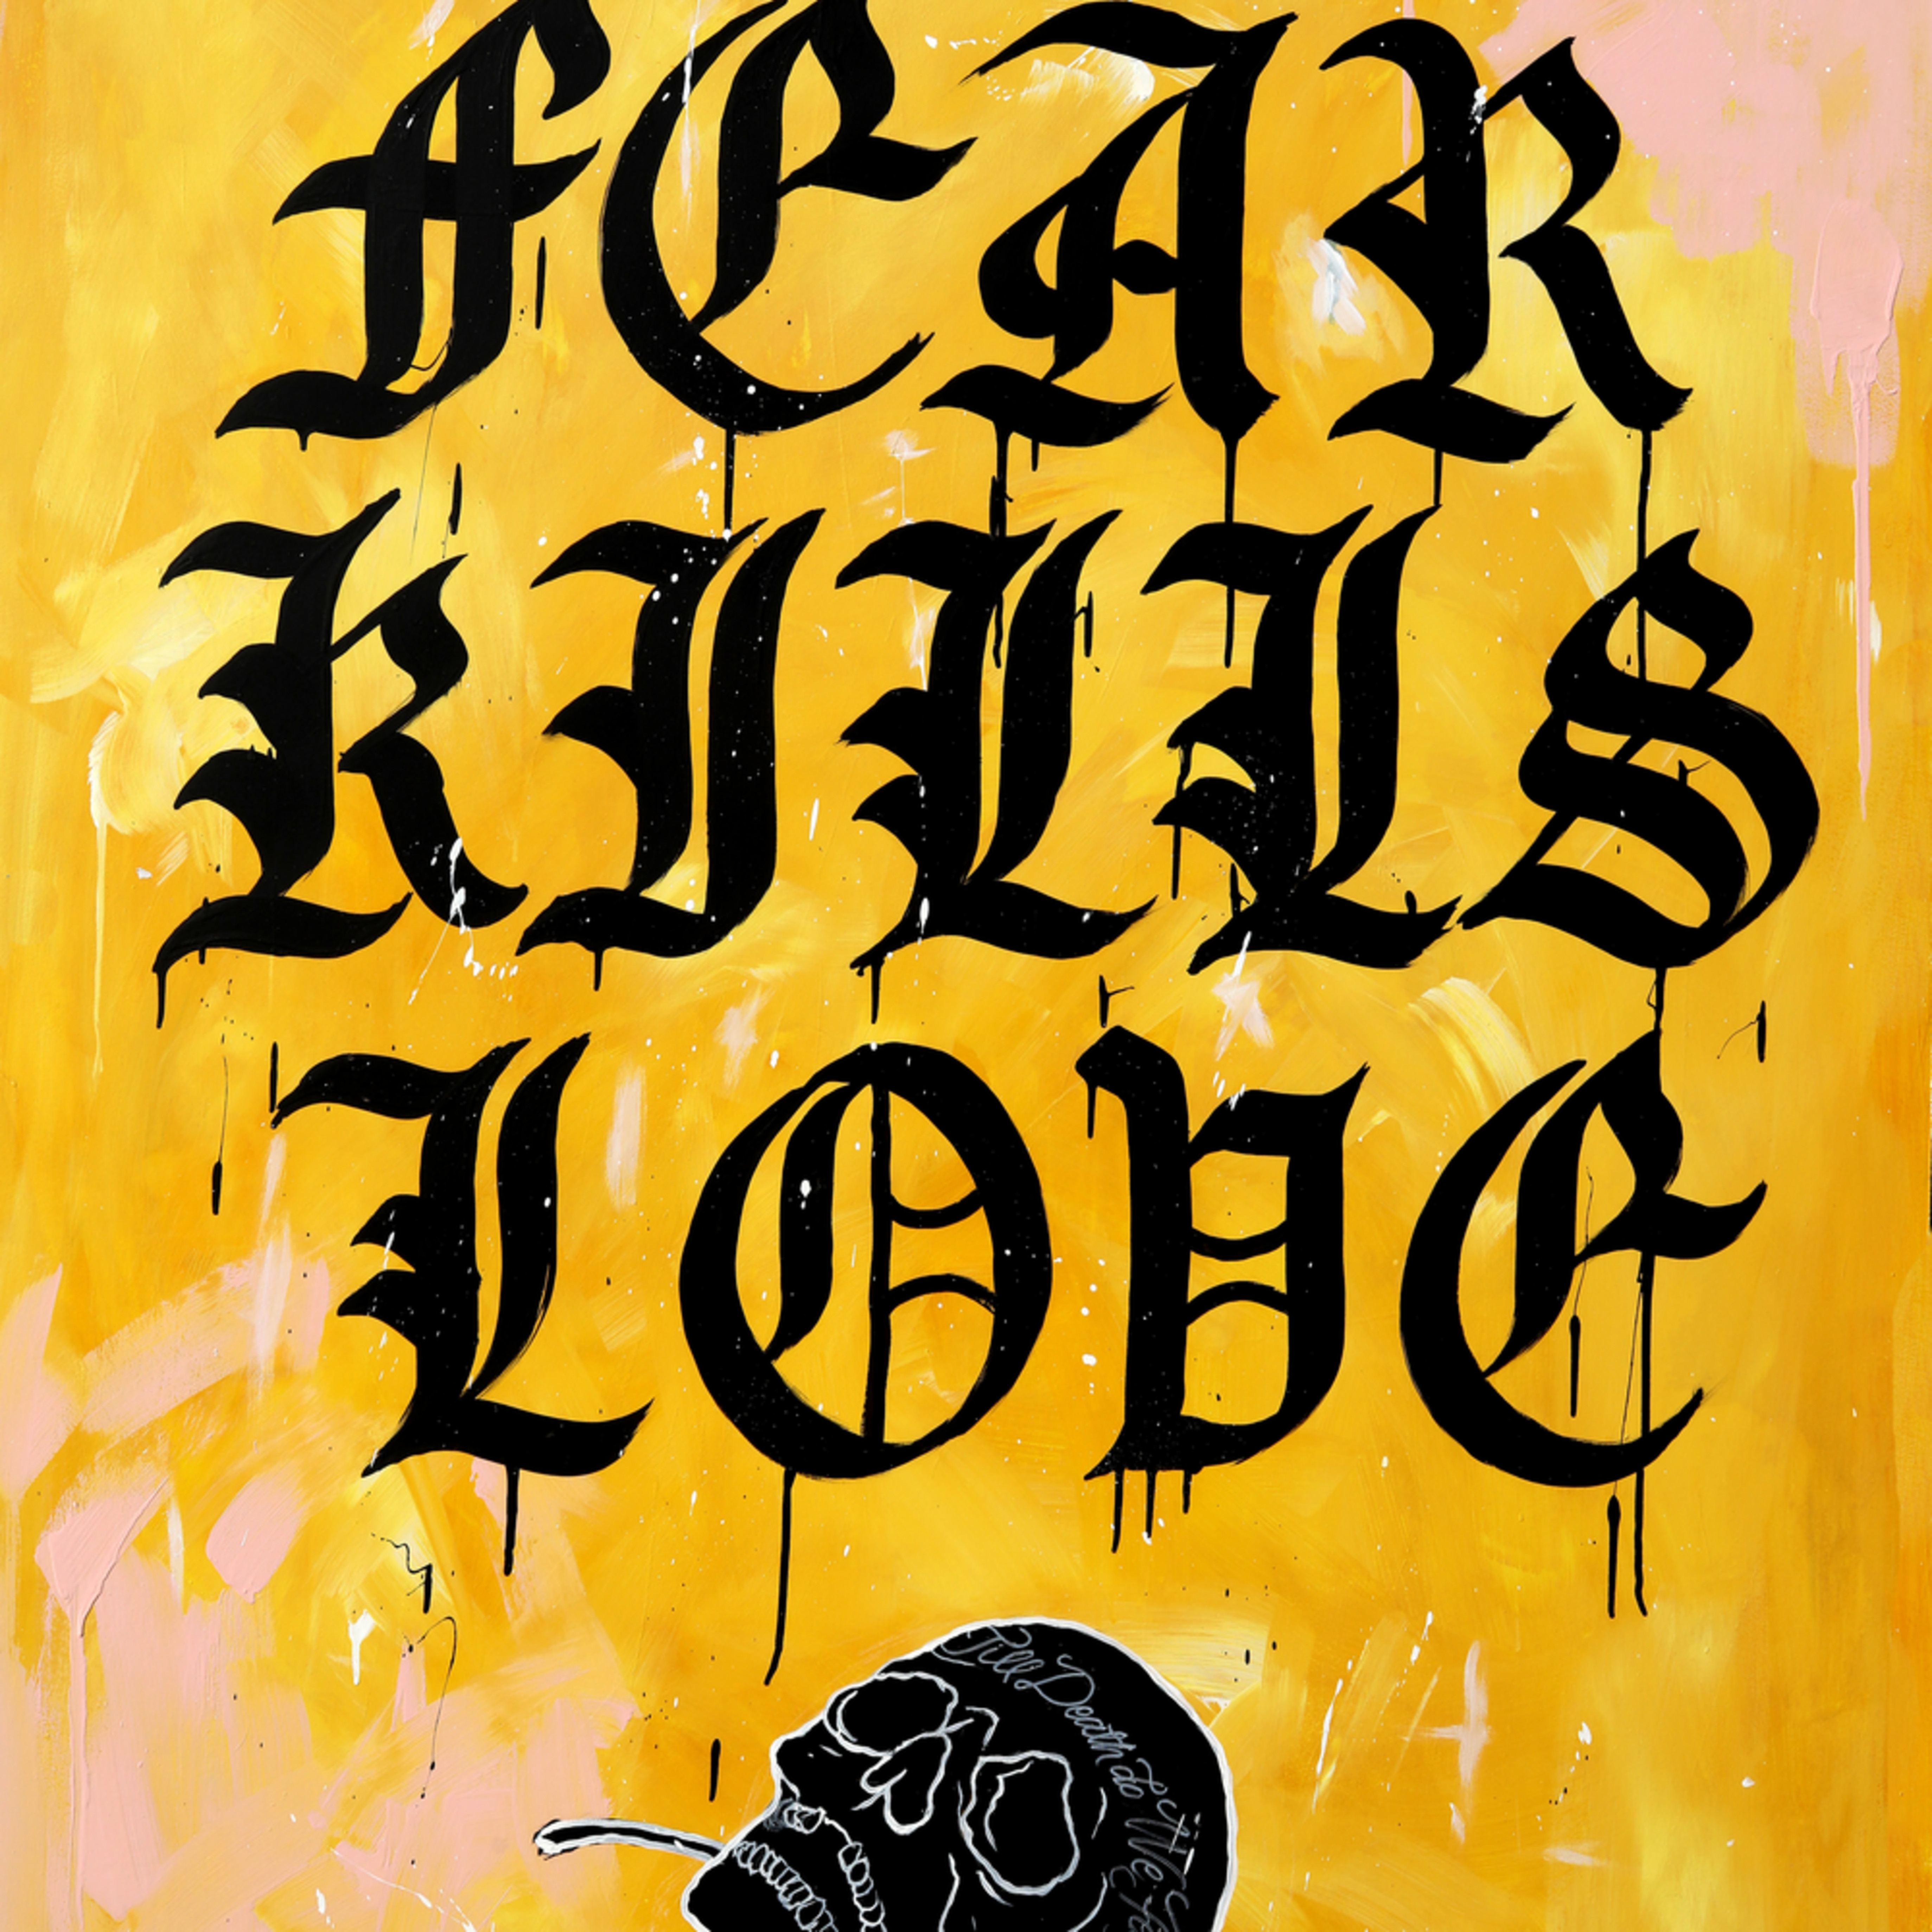 Fear kills love nhqpwh